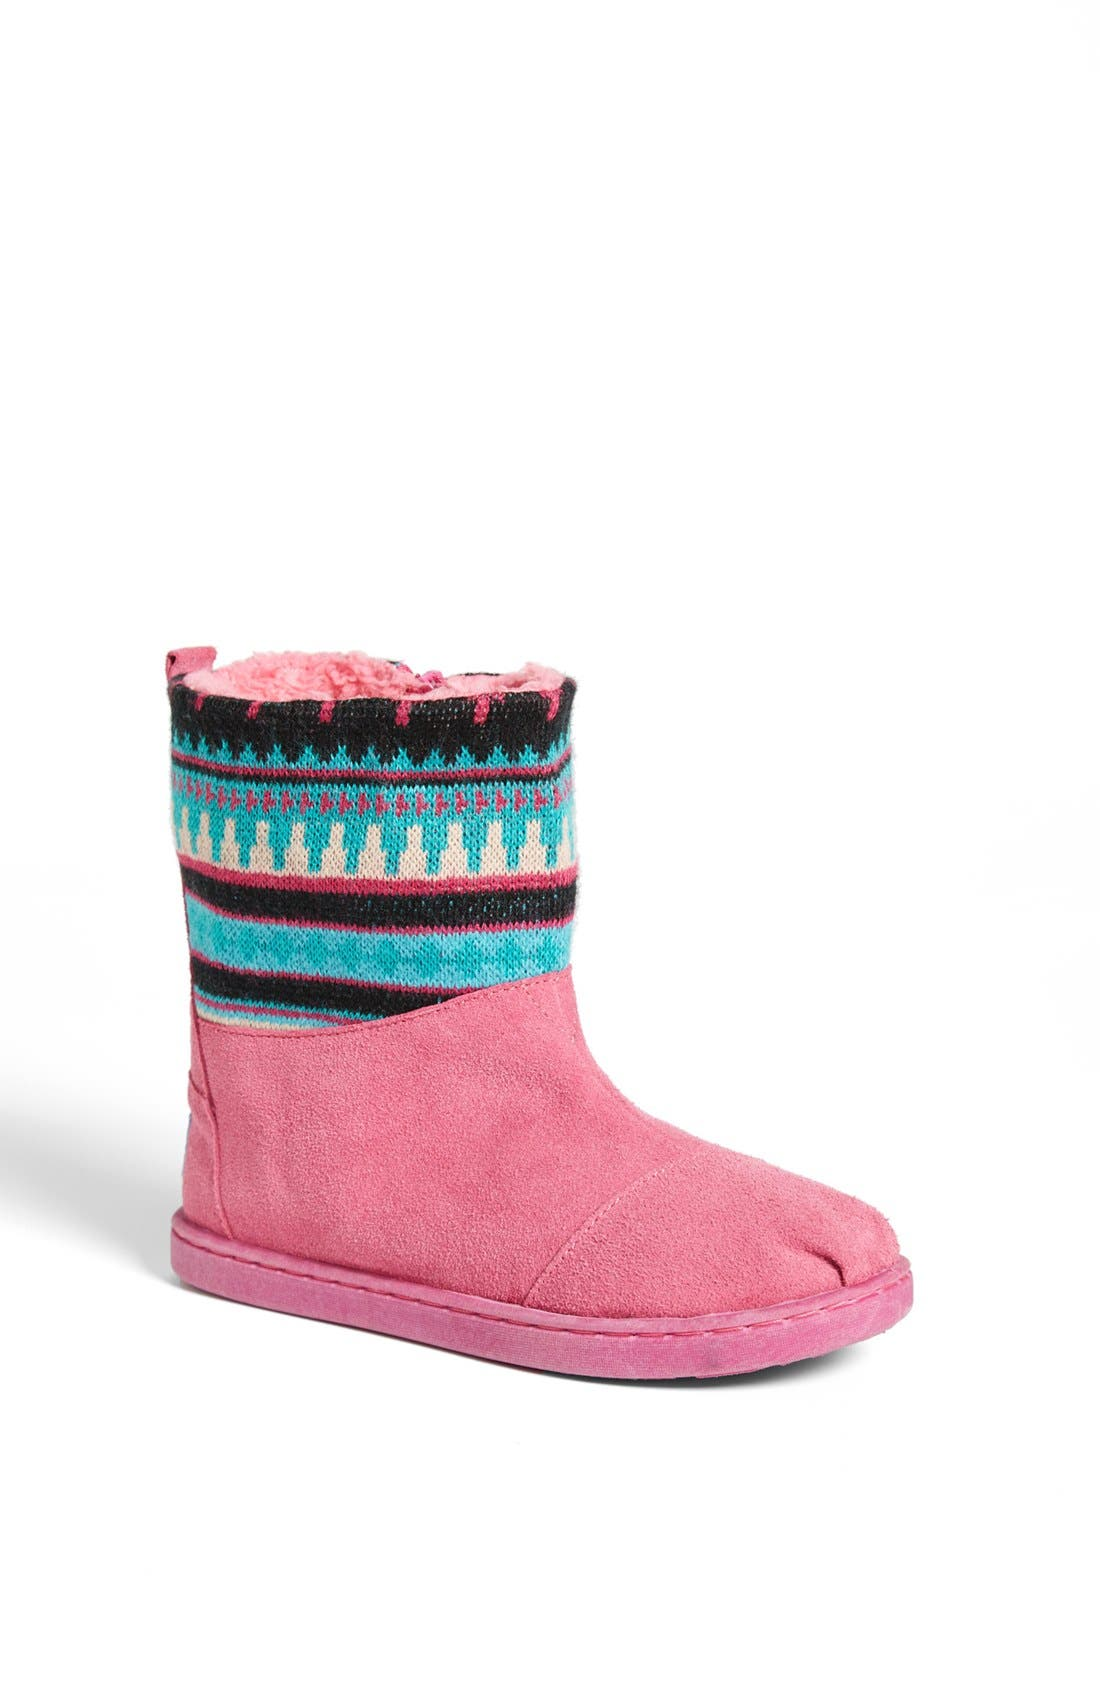 Alternate Image 1 Selected - TOMS 'Nepal - Youth' Knit Shaft Boot (Toddler, Little Kid & Big Kid)